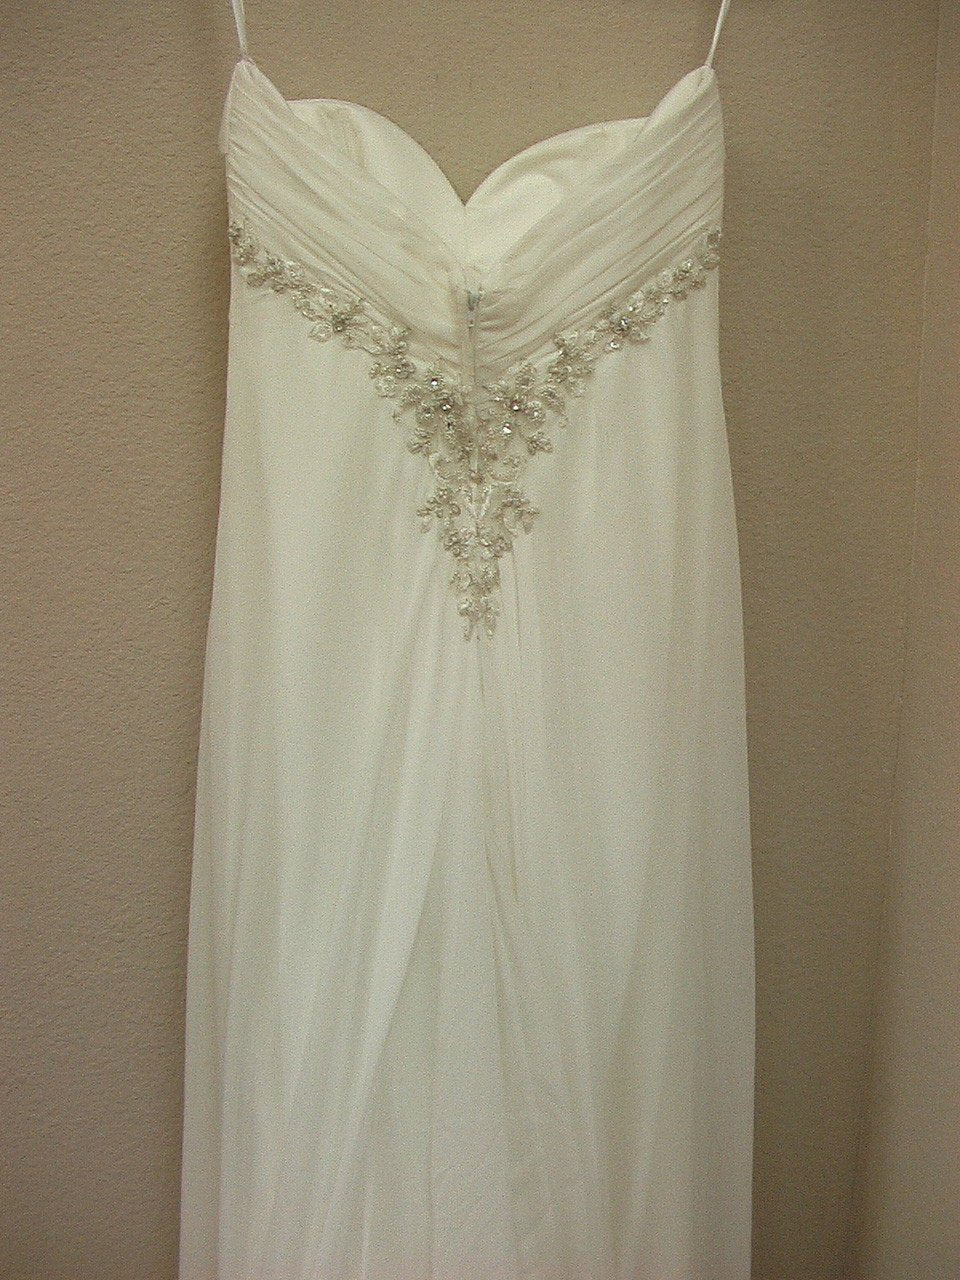 Allure 932 Ivory size 12 In Stock Wedding Dress - Tom's Bridal